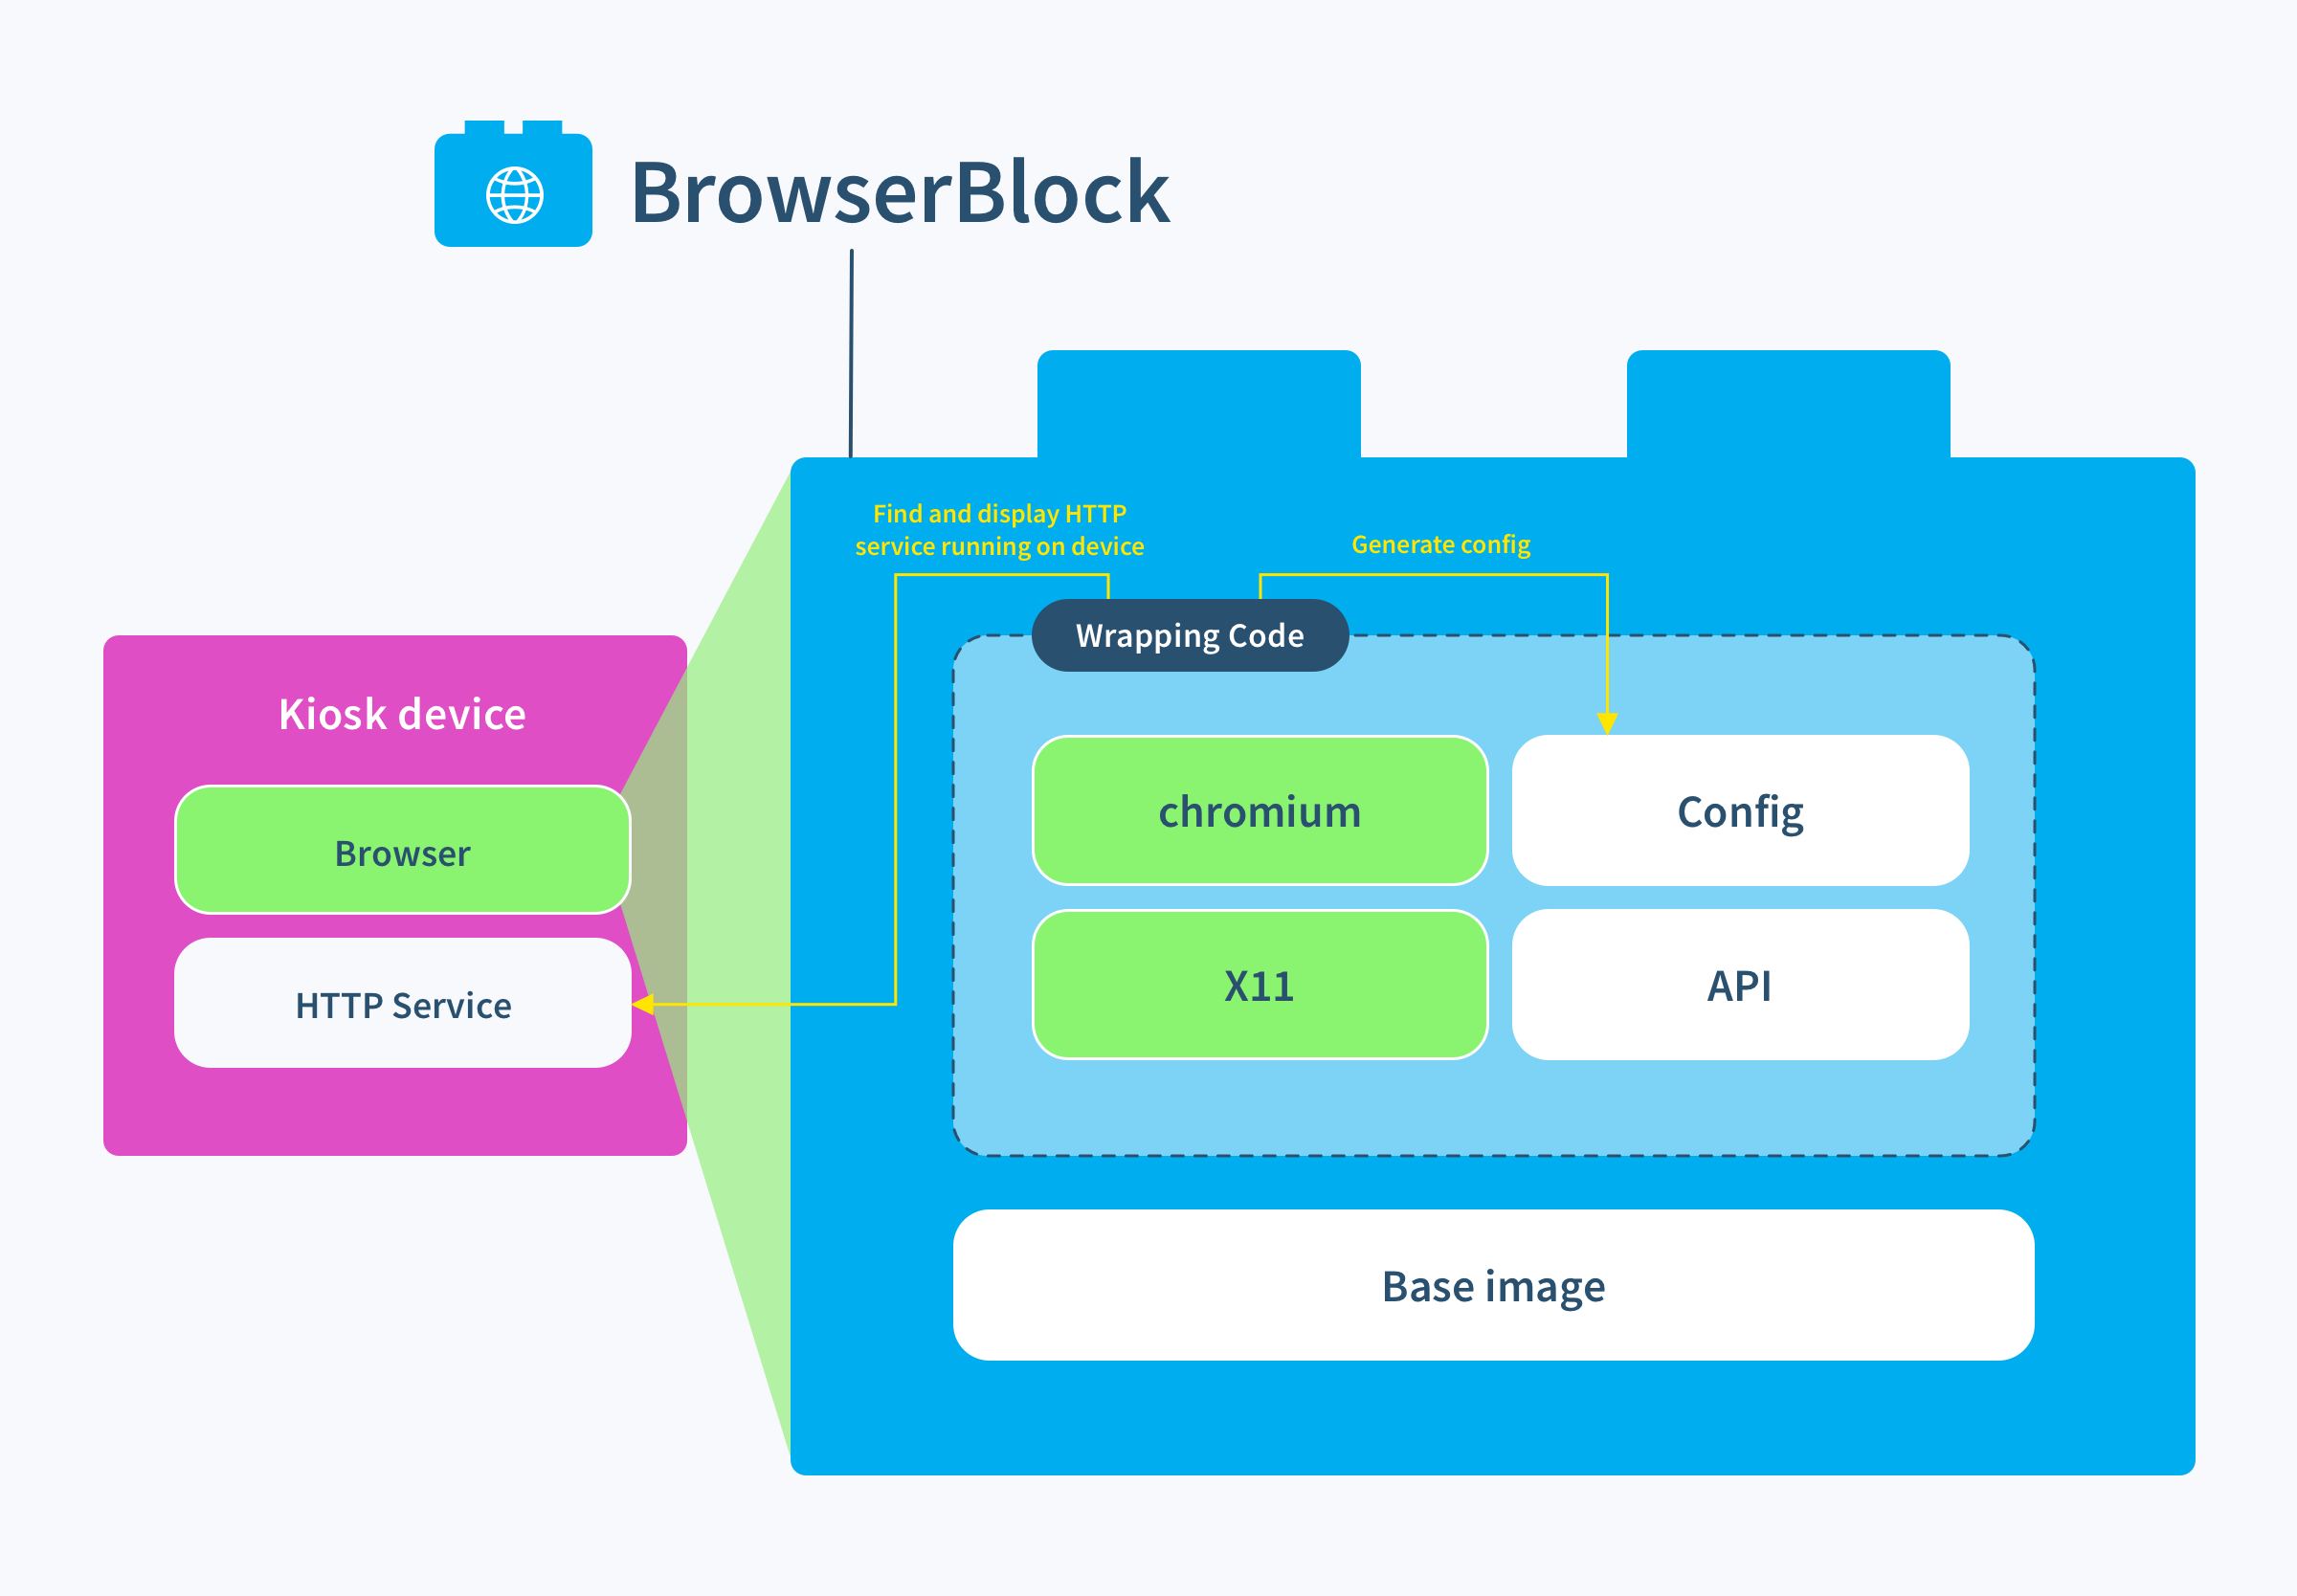 Let's look inside the browser block